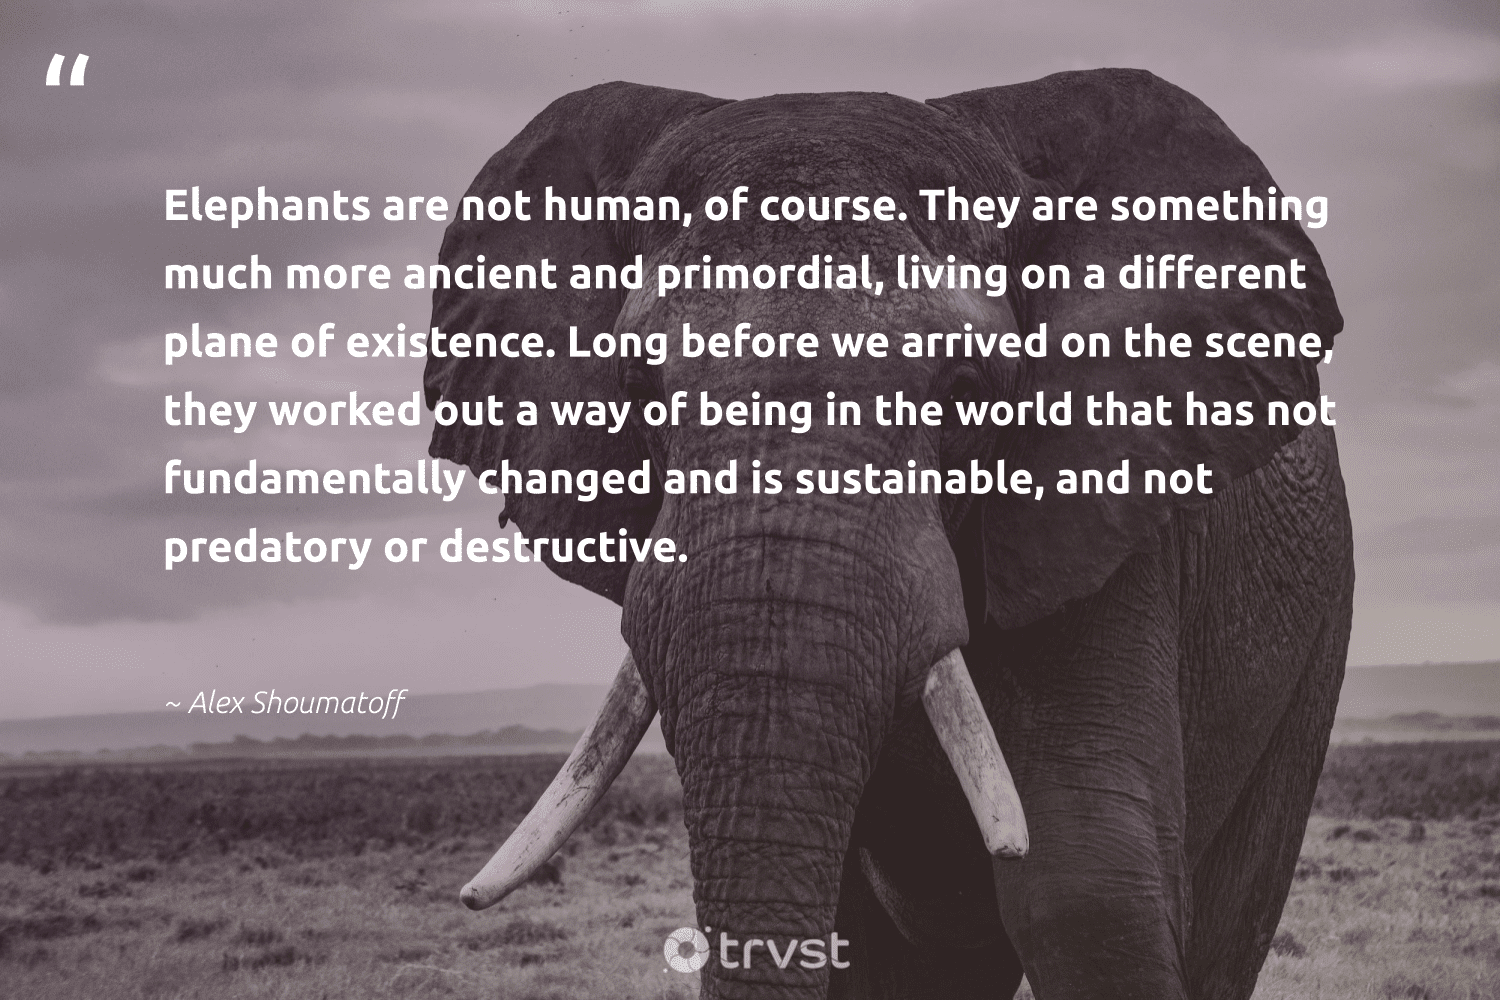 """""""Elephants are not human, of course. They are something much more ancient and primordial, living on a different plane of existence. Long before we arrived on the scene, they worked out a way of being in the world that has not fundamentally changed and is sustainable, and not predatory or destructive.""""  - Alex Shoumatoff #trvst #quotes #sustainable #elephants #sustainability #savetheelephants #green #takeaction #ecofriendly #mammals #gogreen #bethechange"""